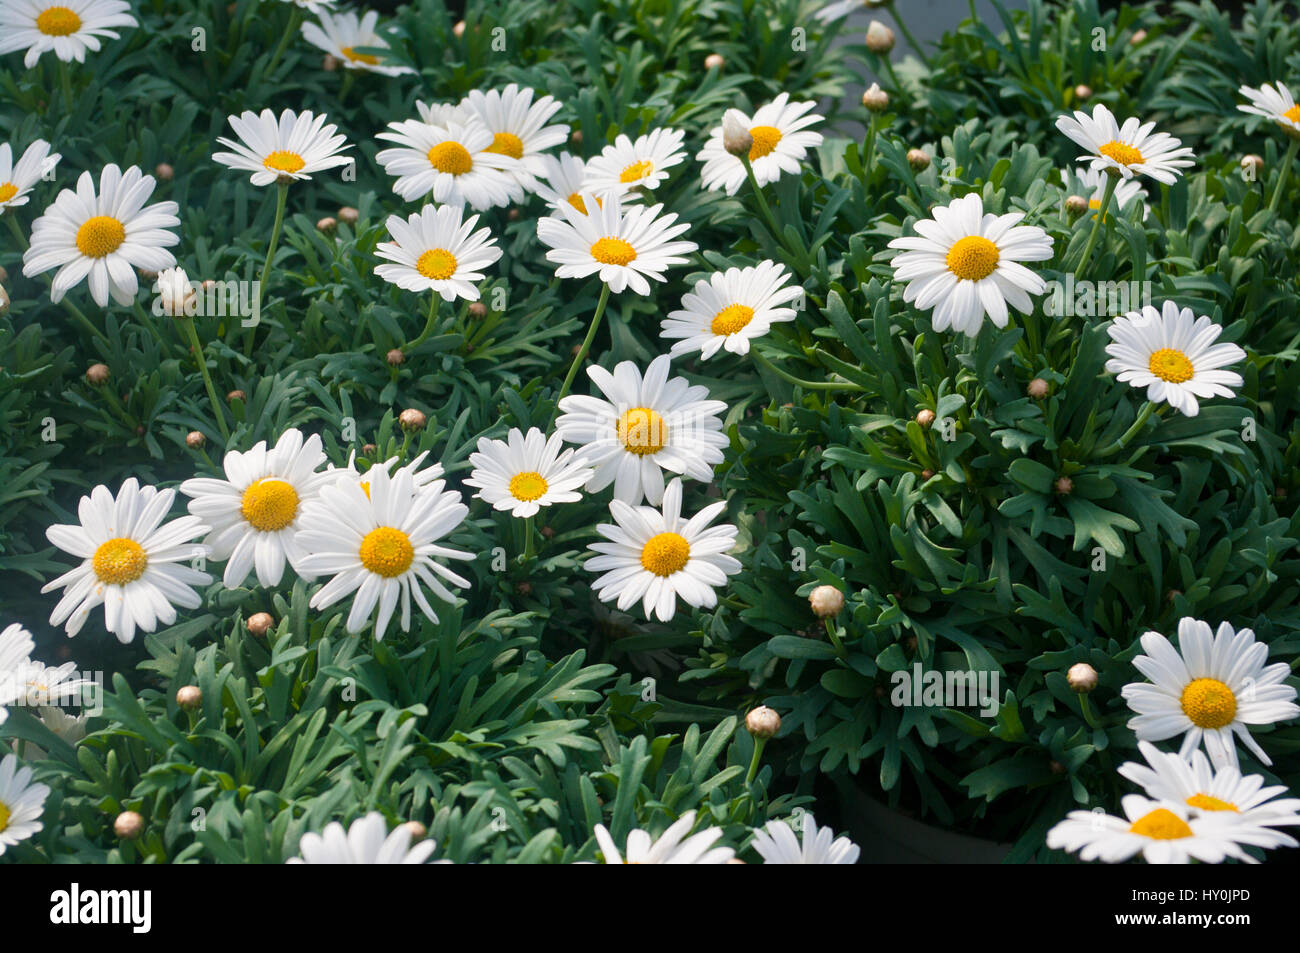 White Marguerite Flowers also known as Chrysanthemum Frutescens and Paris Daisy - Stock Image